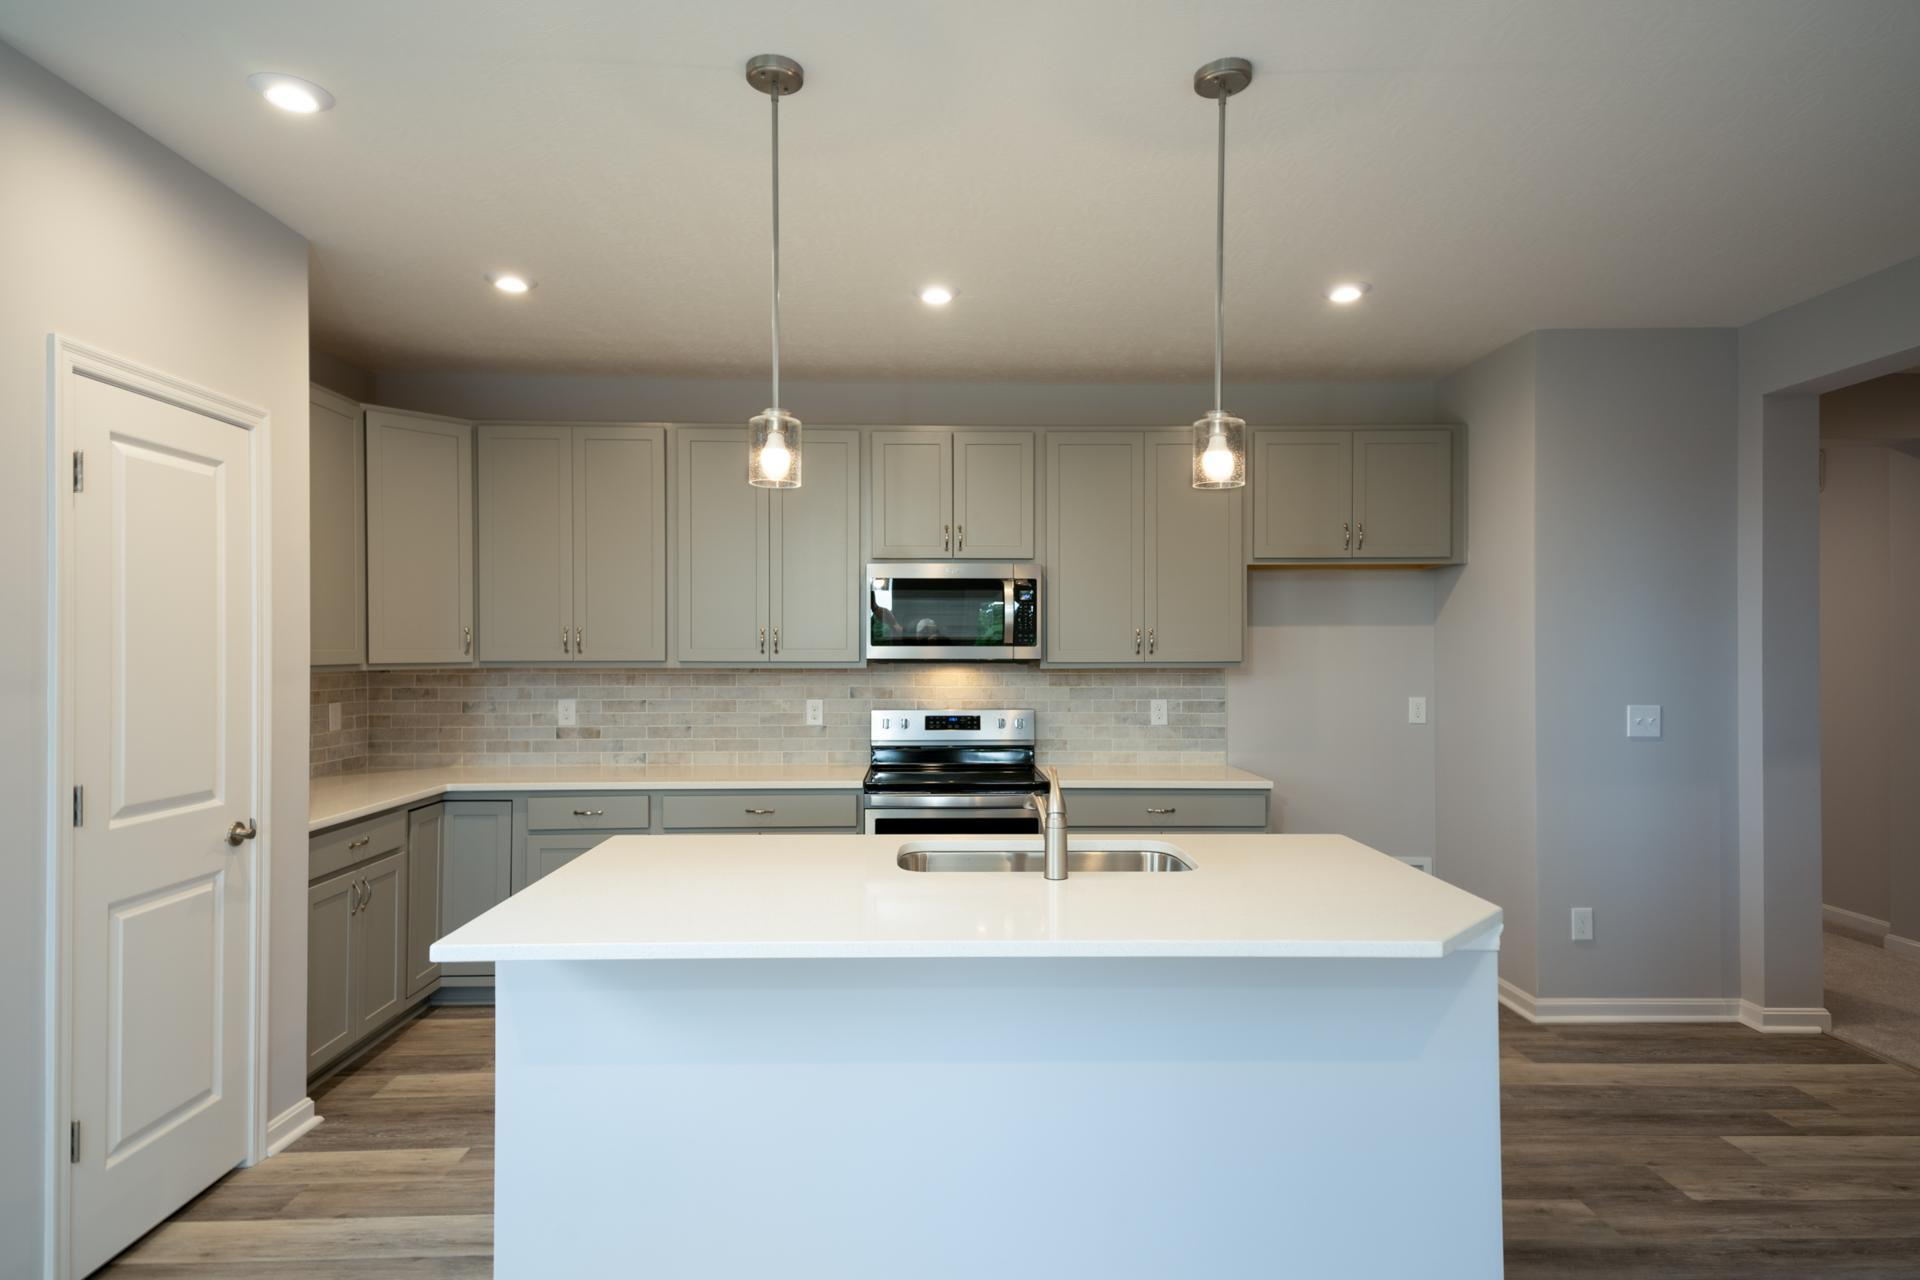 Kitchen featured in the Taos By Drees Homes in Cincinnati, KY